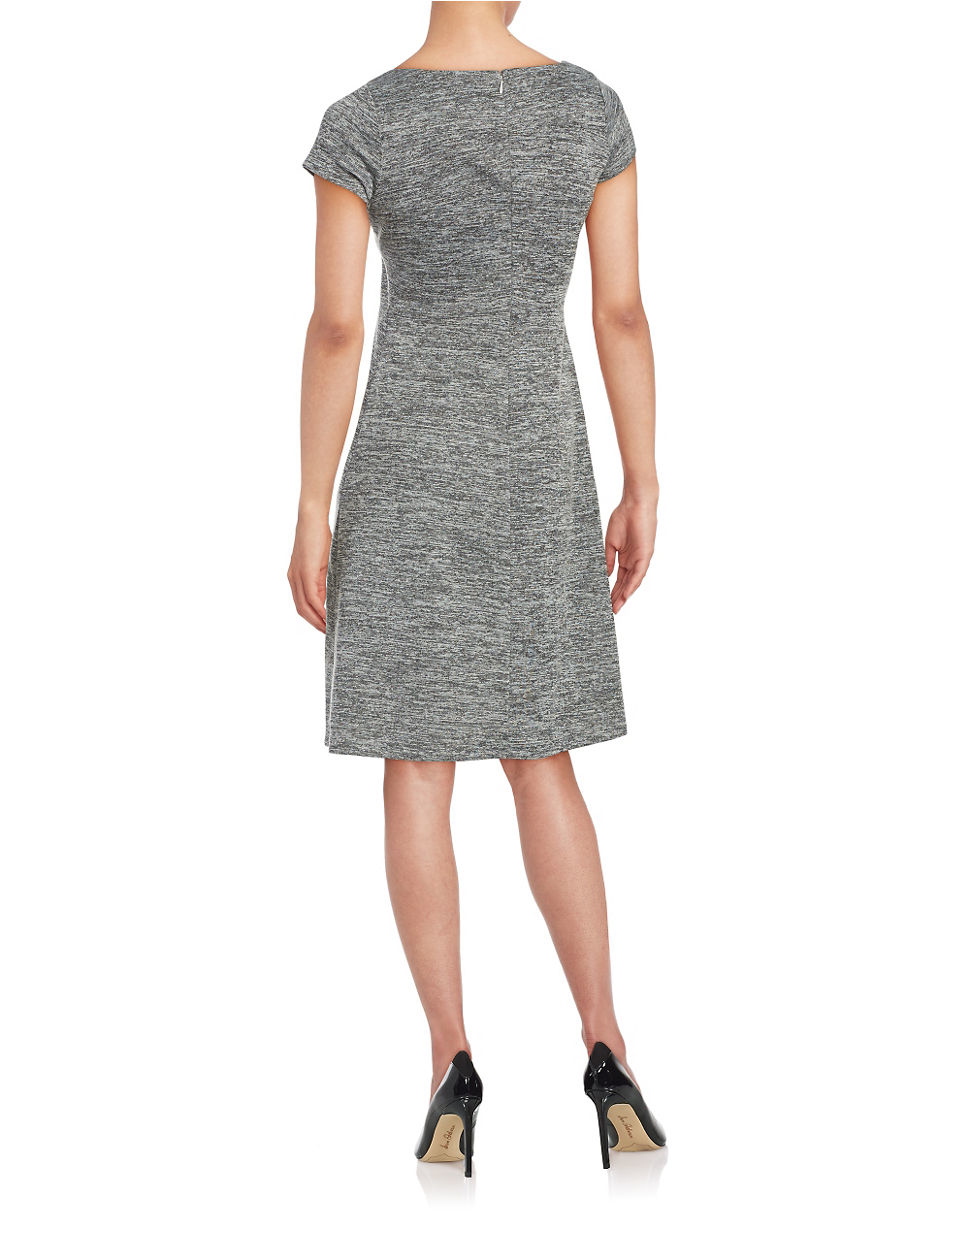 Ivanka trump Textured A-line Dress in Gray | Lyst